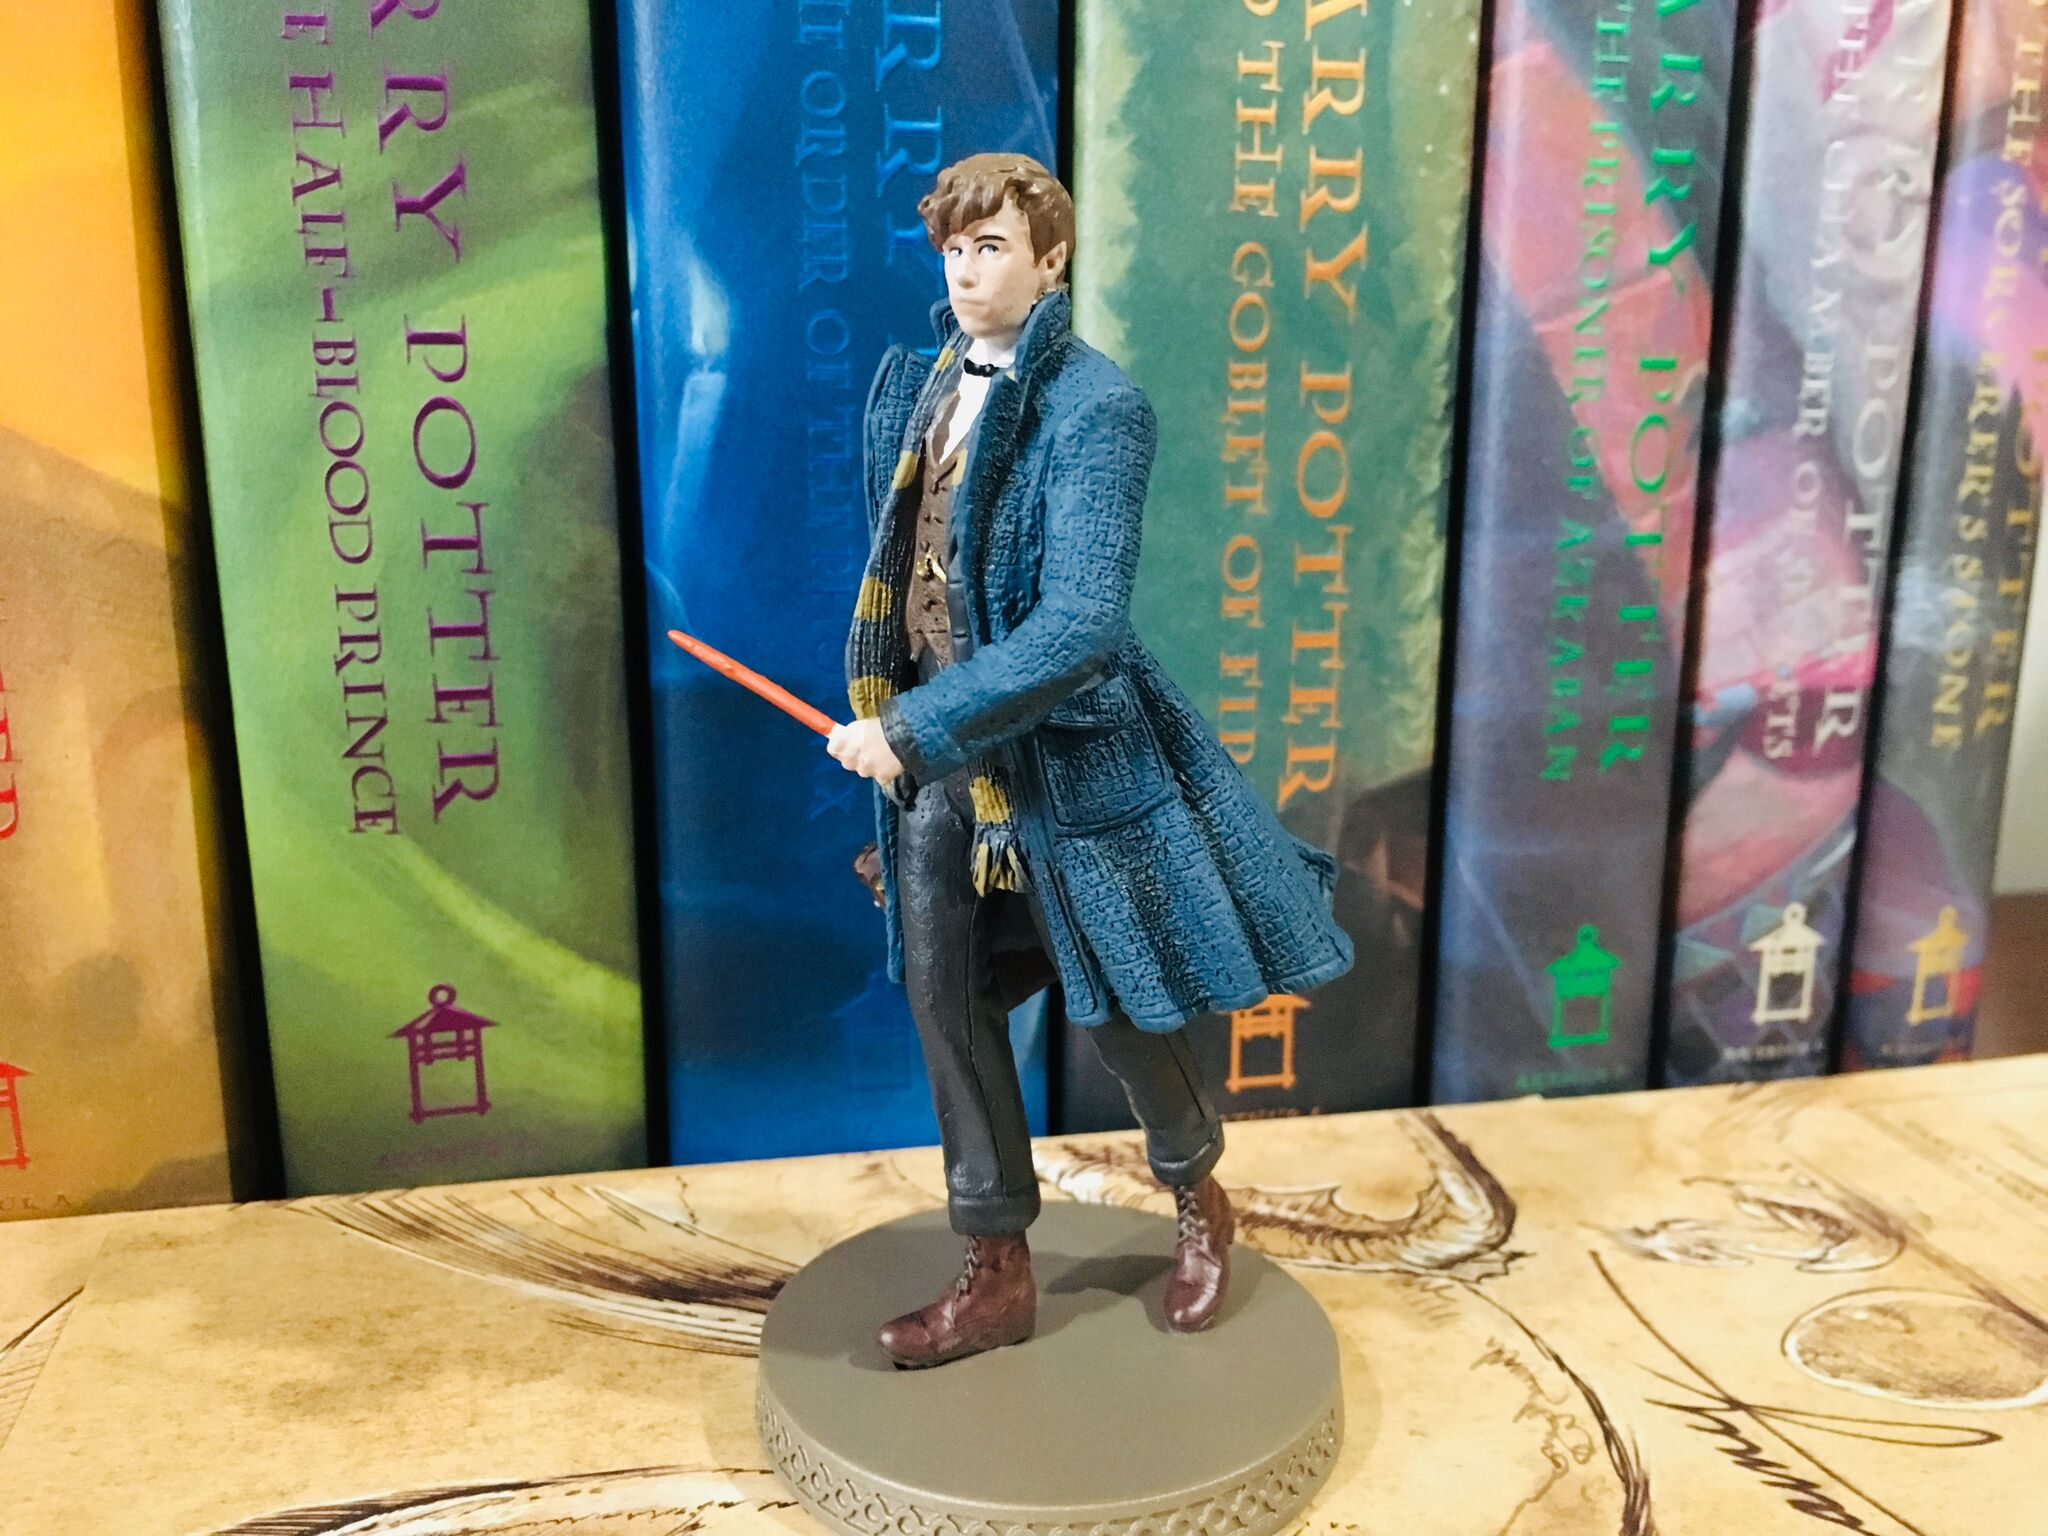 From this side picture, one can see Newt's wand in full detail.